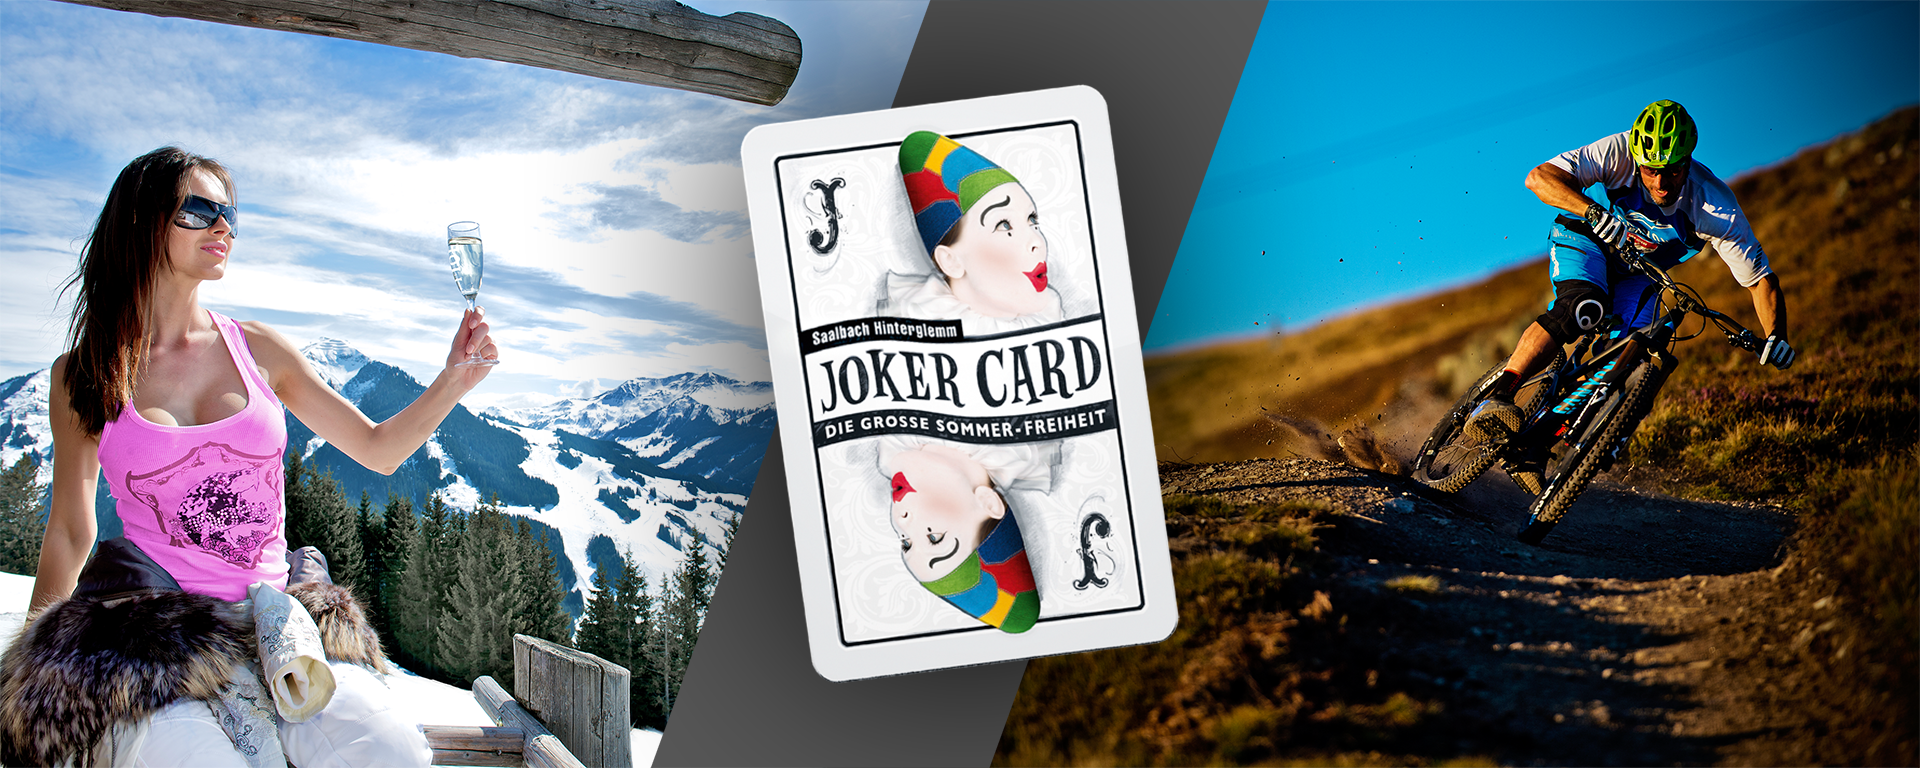 joker_card_banner_small